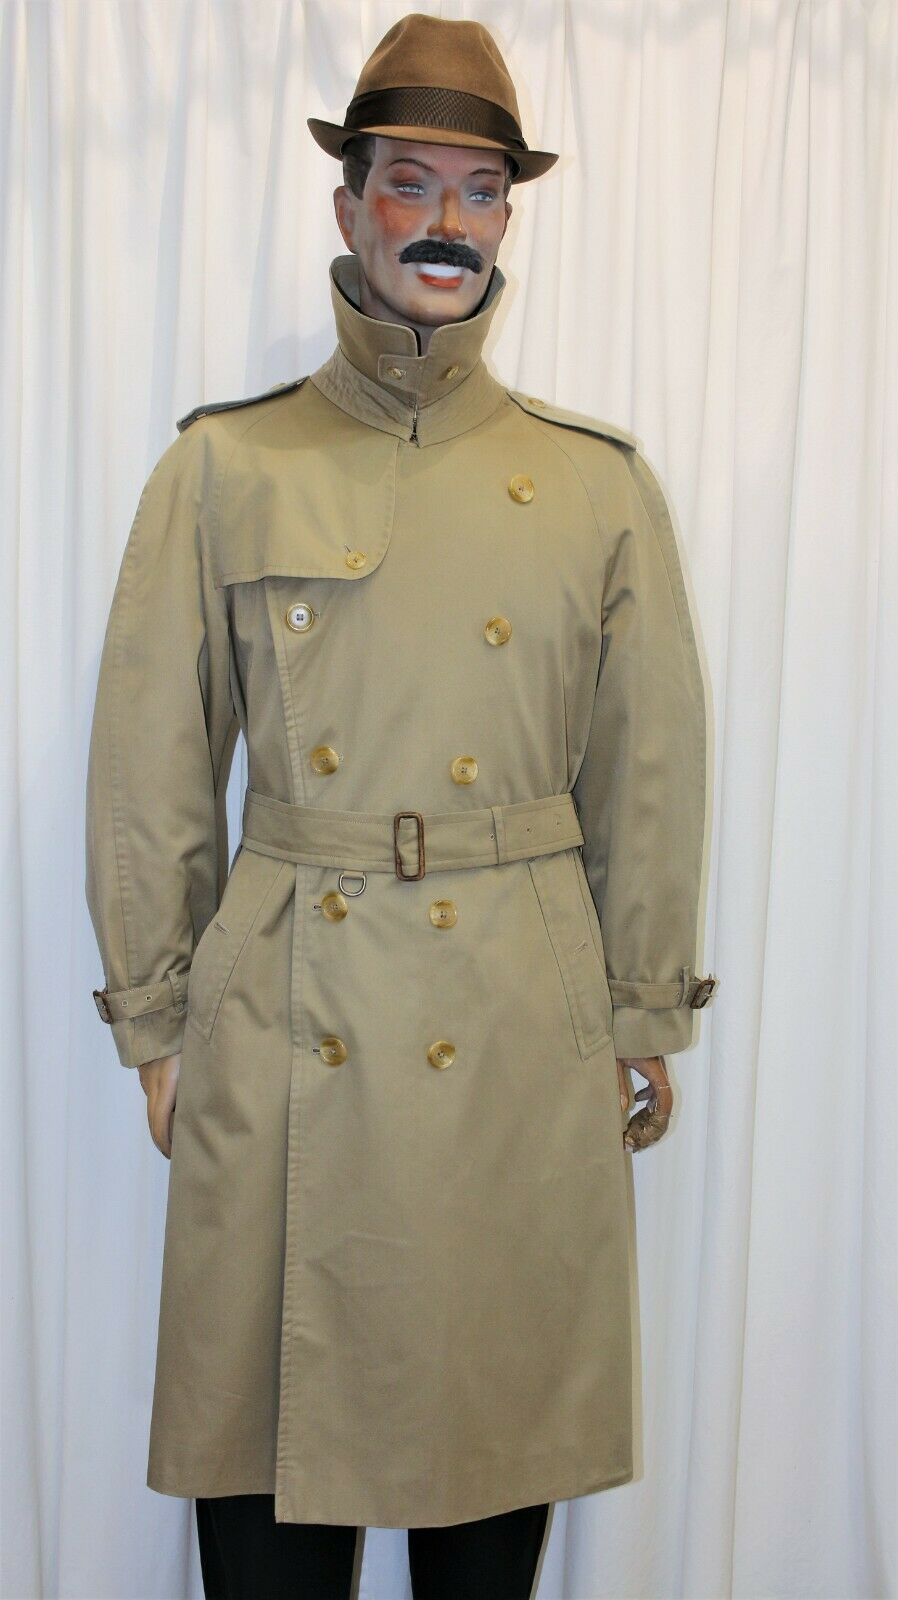 Trench imperméable burberry's homme mastic taille 52 long made in england